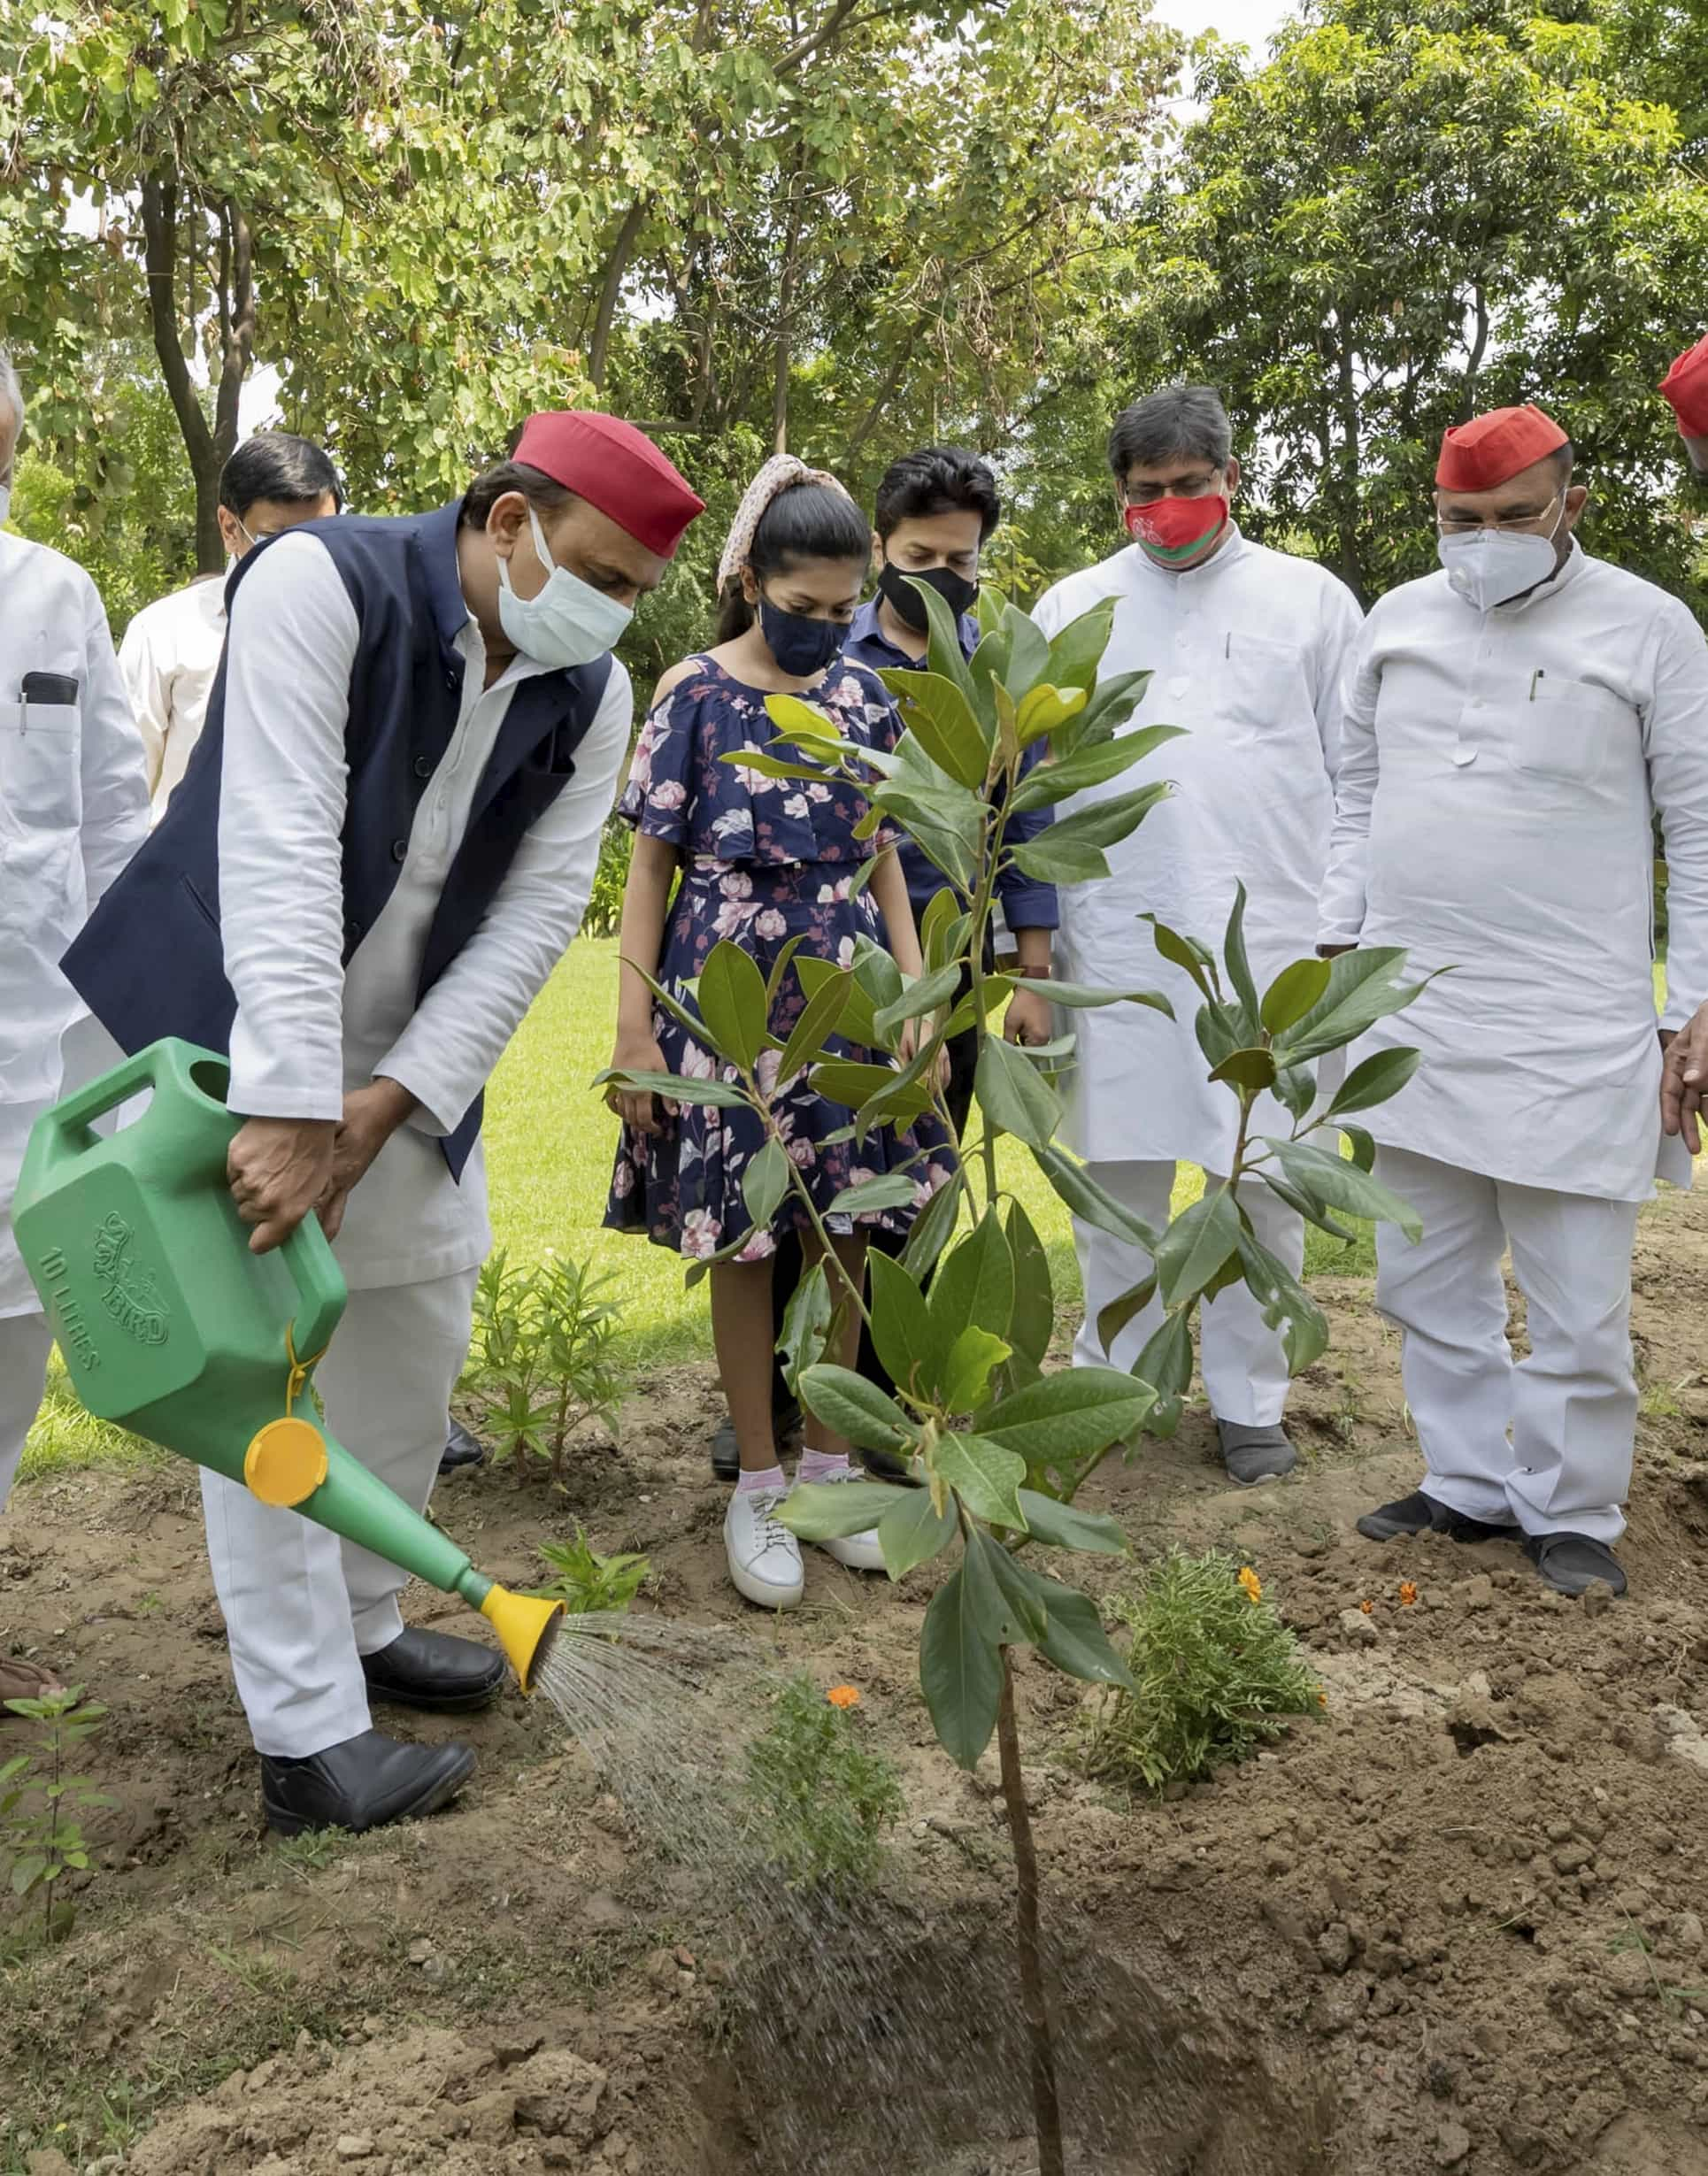 Samajwadi Party leader Akhilesh Yadav during a plantation drive at party headquarters in Lucknow on World Environment Day.